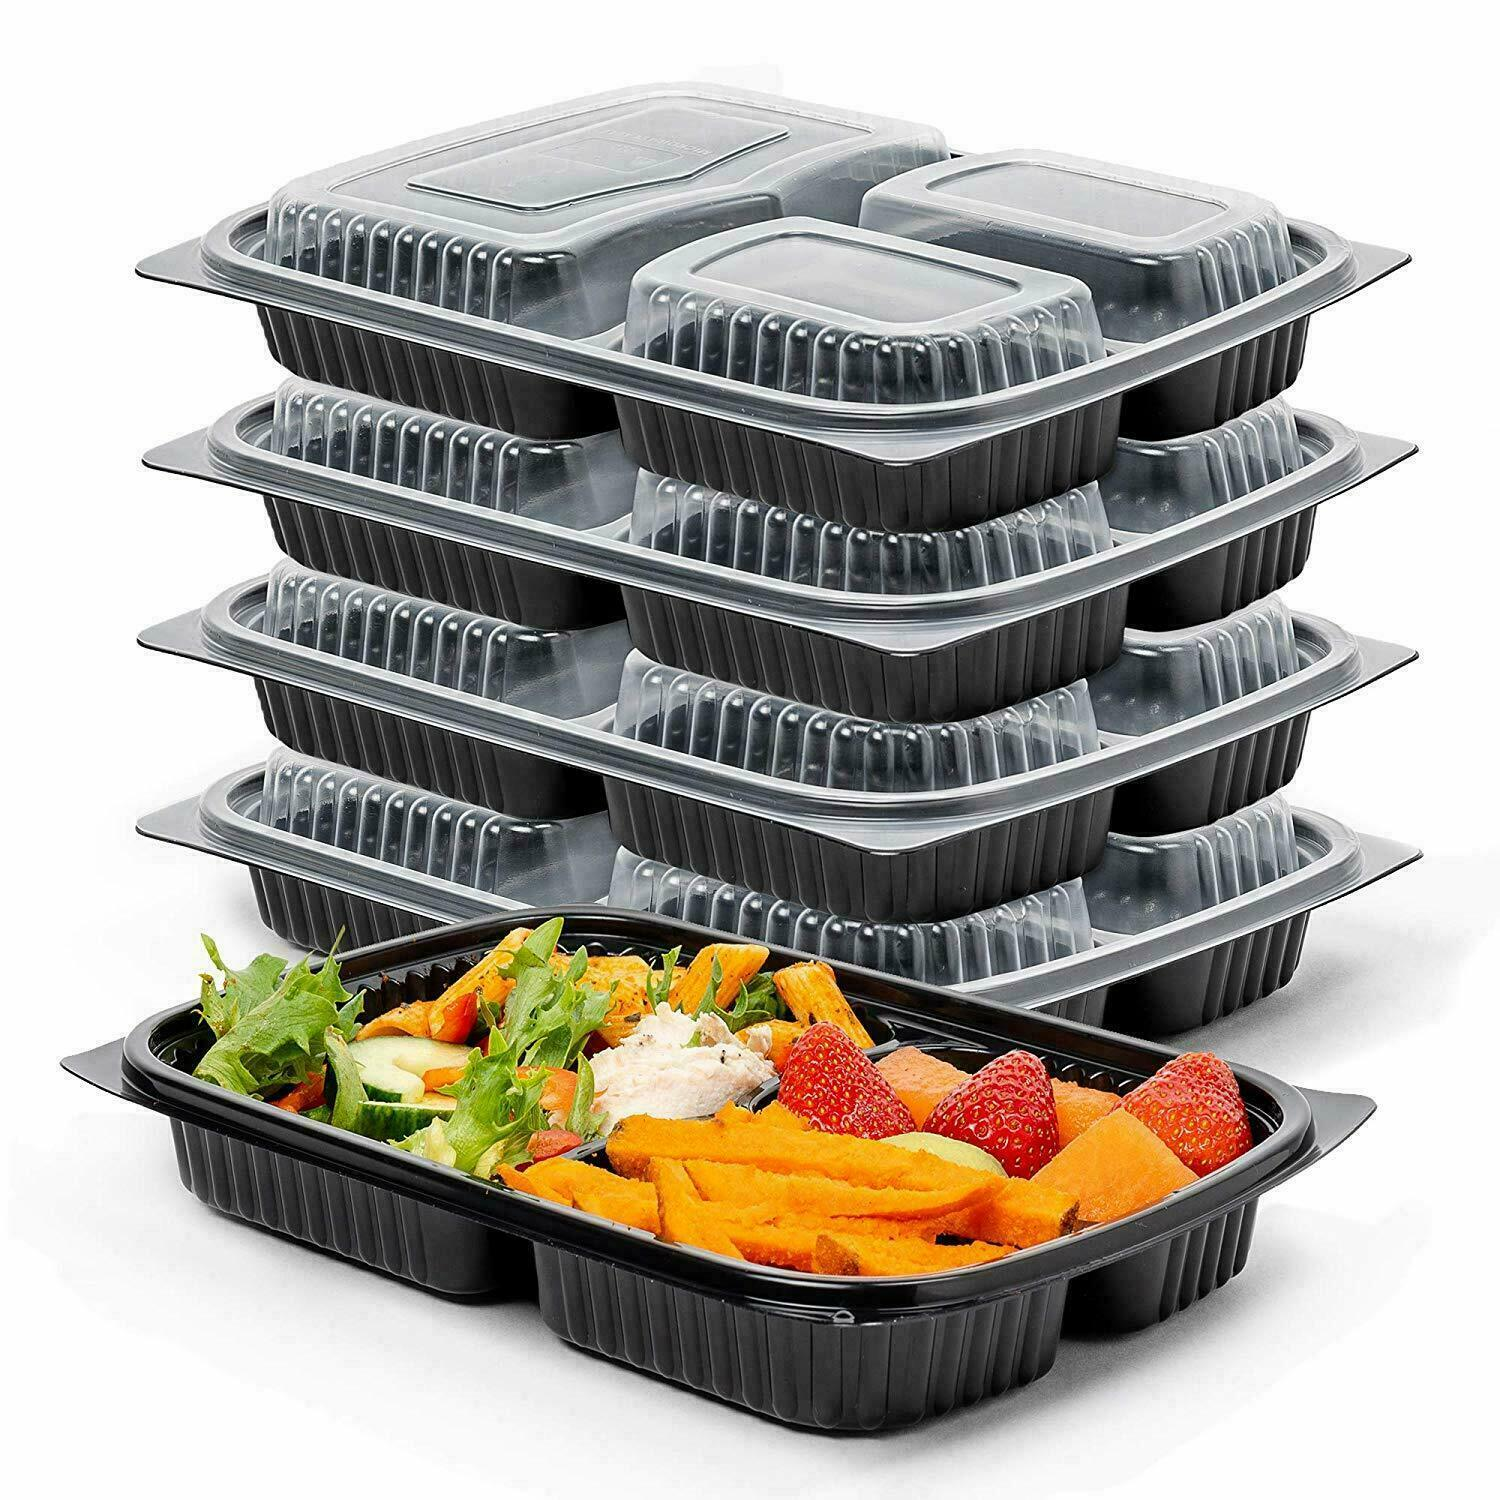 Meal Prep Food Containers 1,2,3 Compartment BPA Free Plastic Lunch Box With Lids